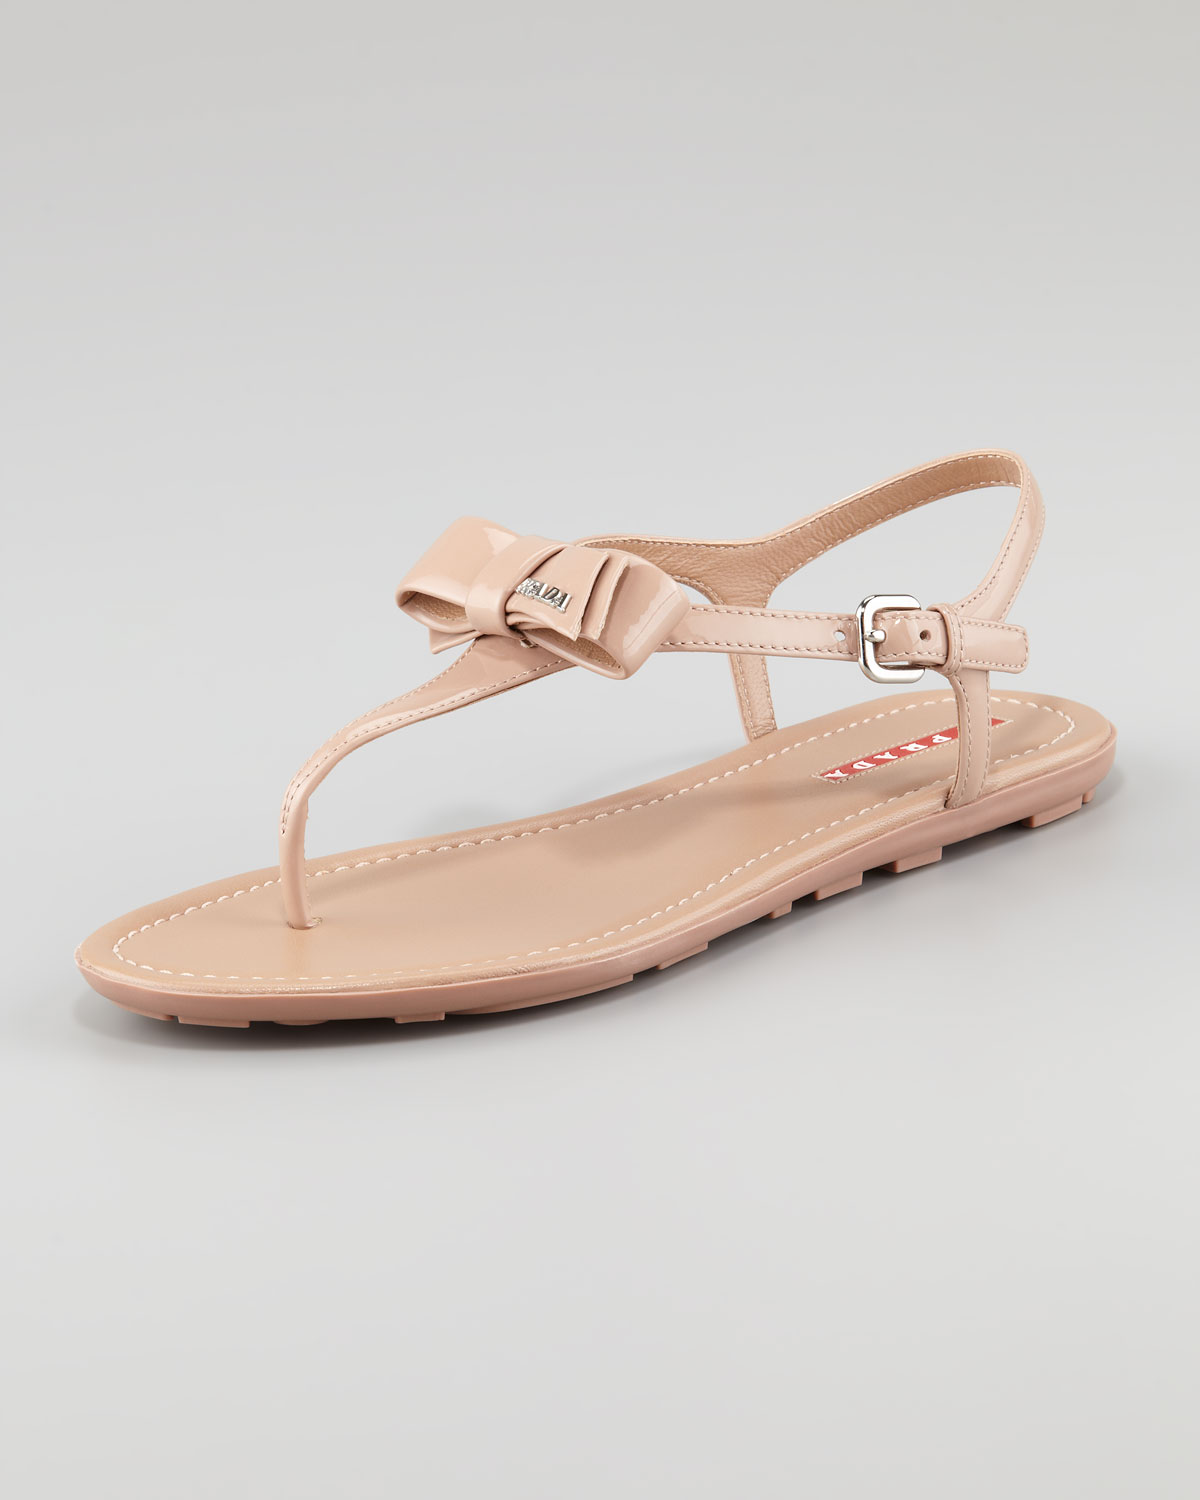 978e23f5df725f Lyst - Prada Patent Leather Bow Thong Sandal in Natural